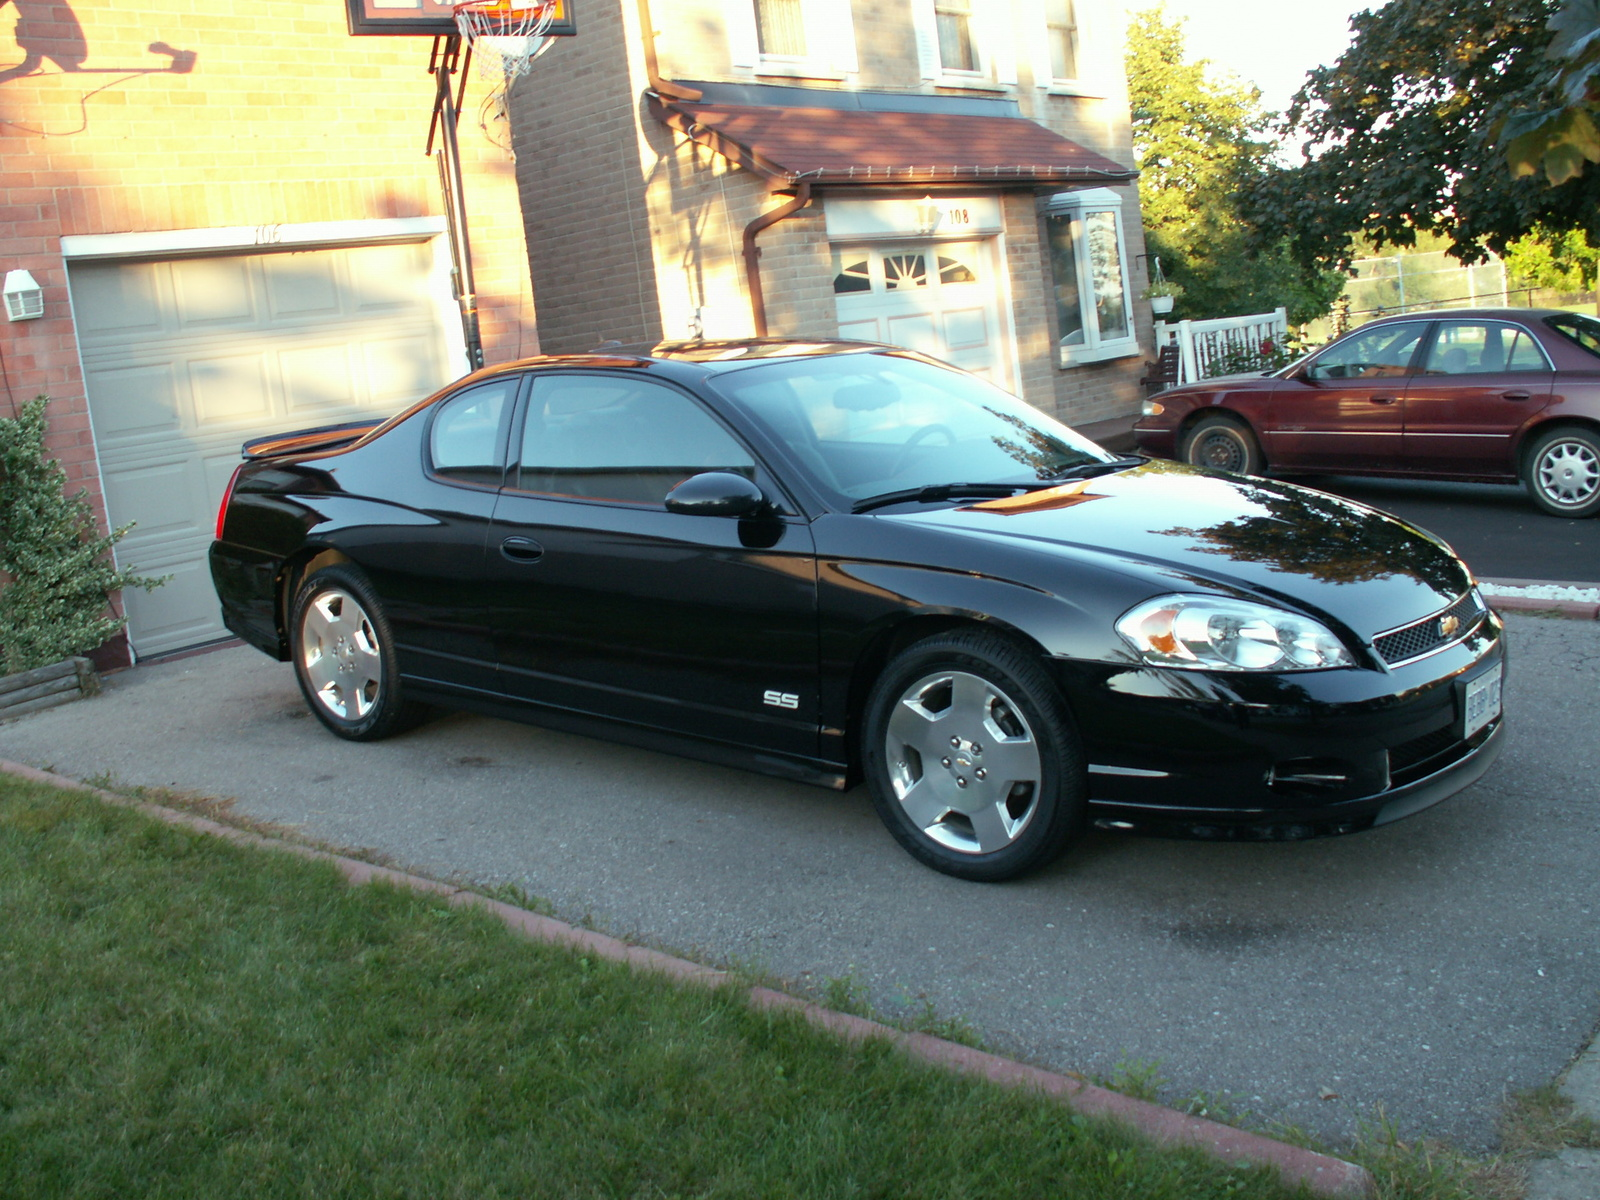 2006 Chevy Monte Carlo SS HD Picture Wallpaper – Image Detail 303